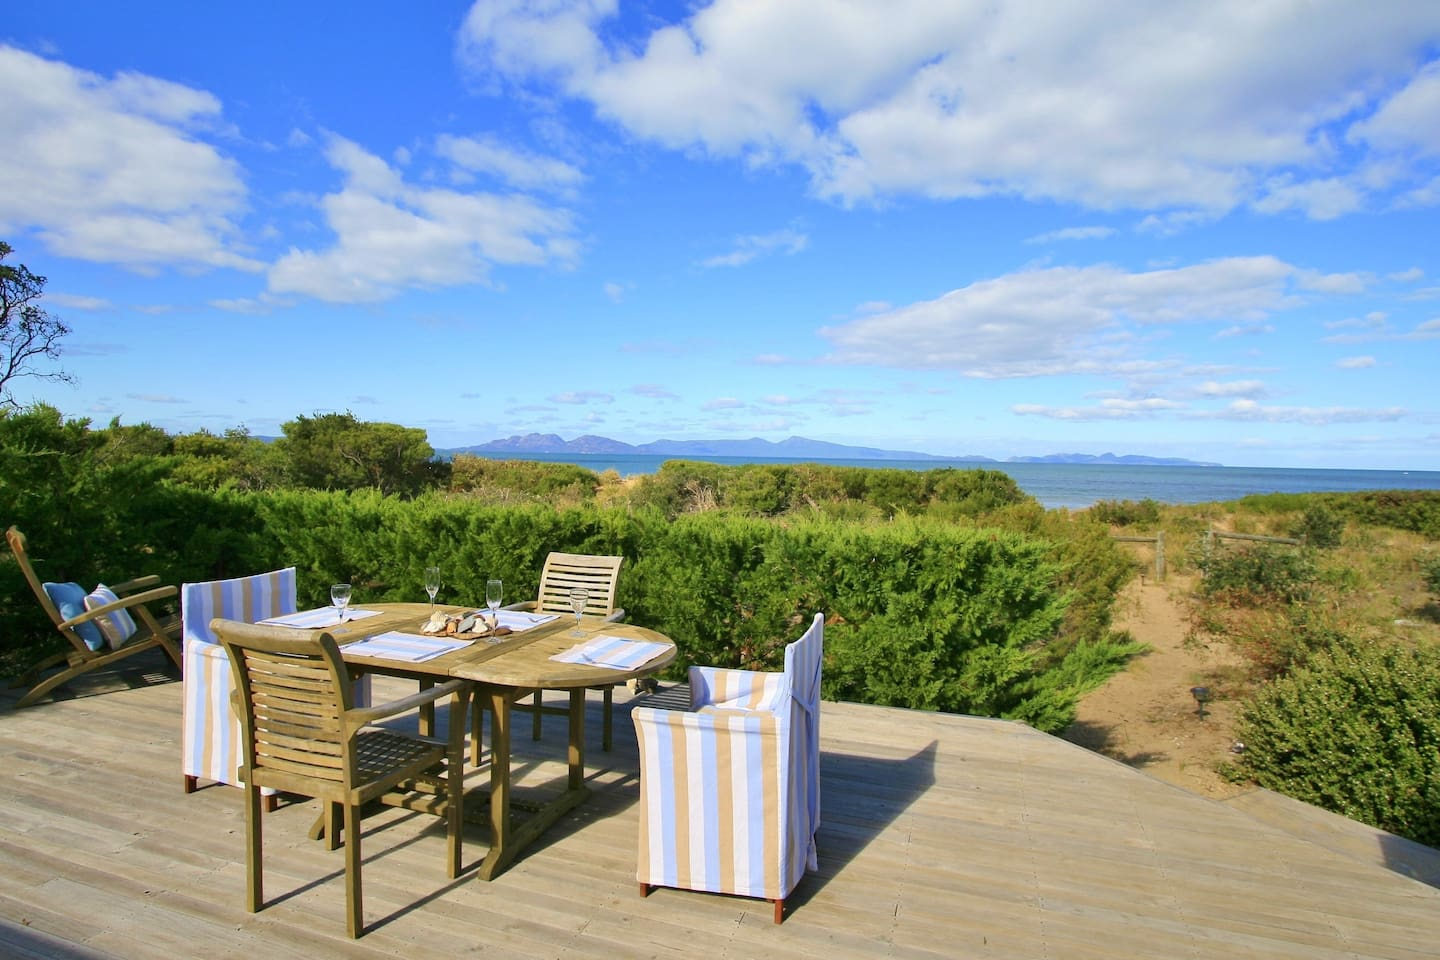 Enjoy a meal on the deck with a view of the Hazards